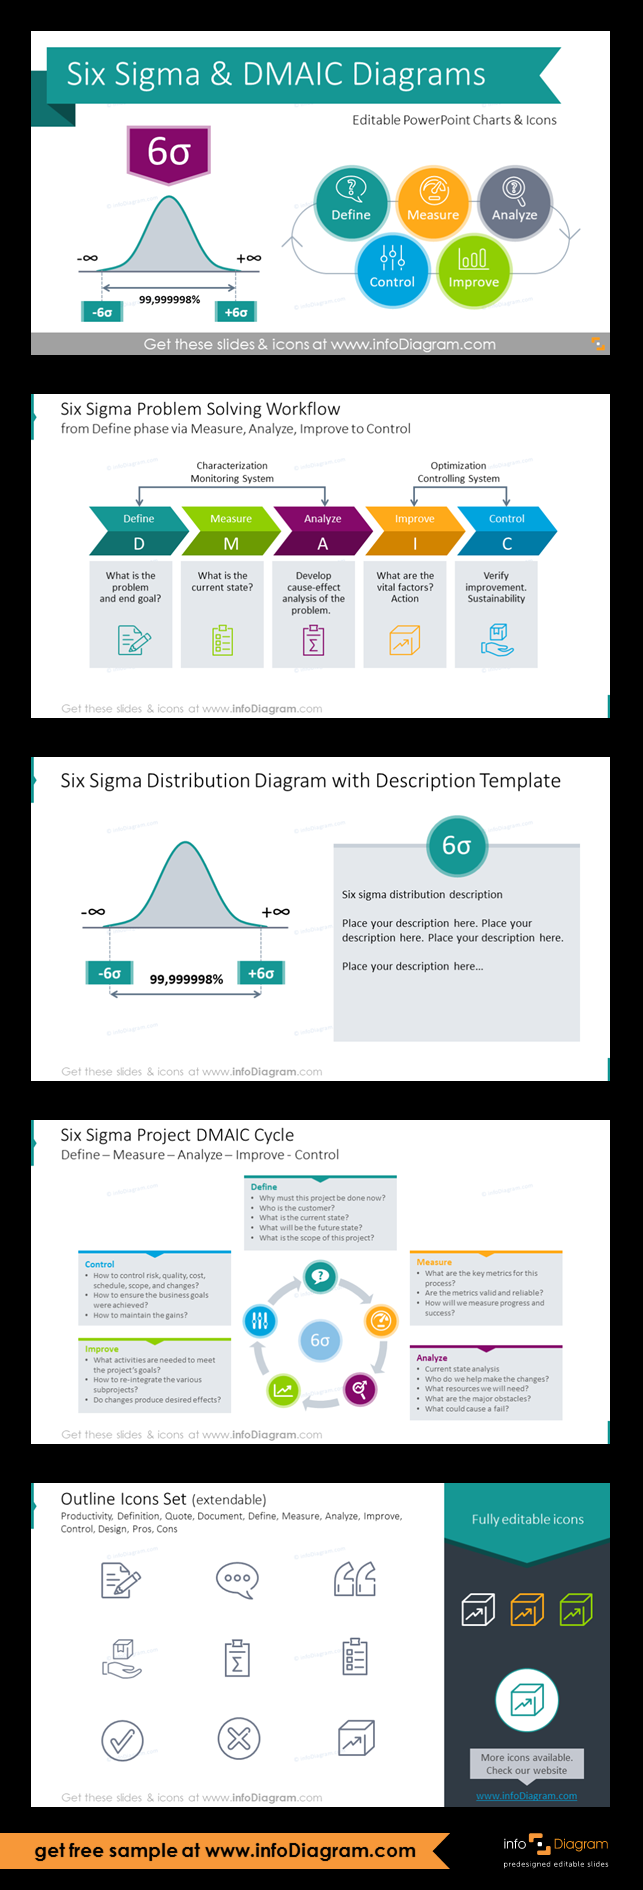 hight resolution of powerpoint template for six sigma training and presentation materials six sigma problem solving workflow six sigma distribution diagram with description